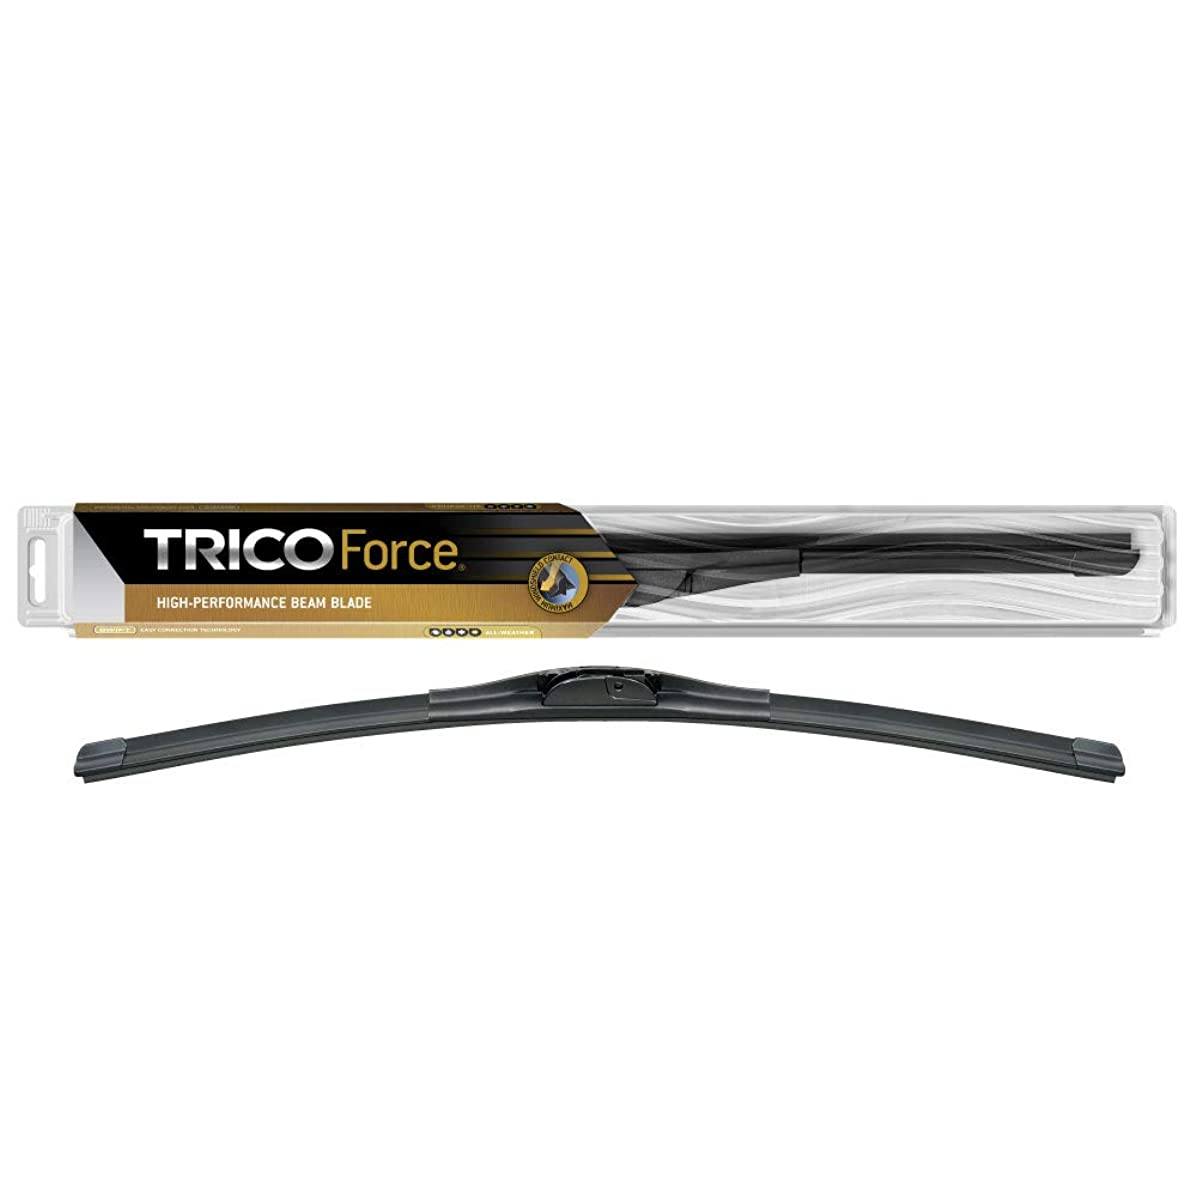 Trico 25-200 Force Beam Wiper Blade 20